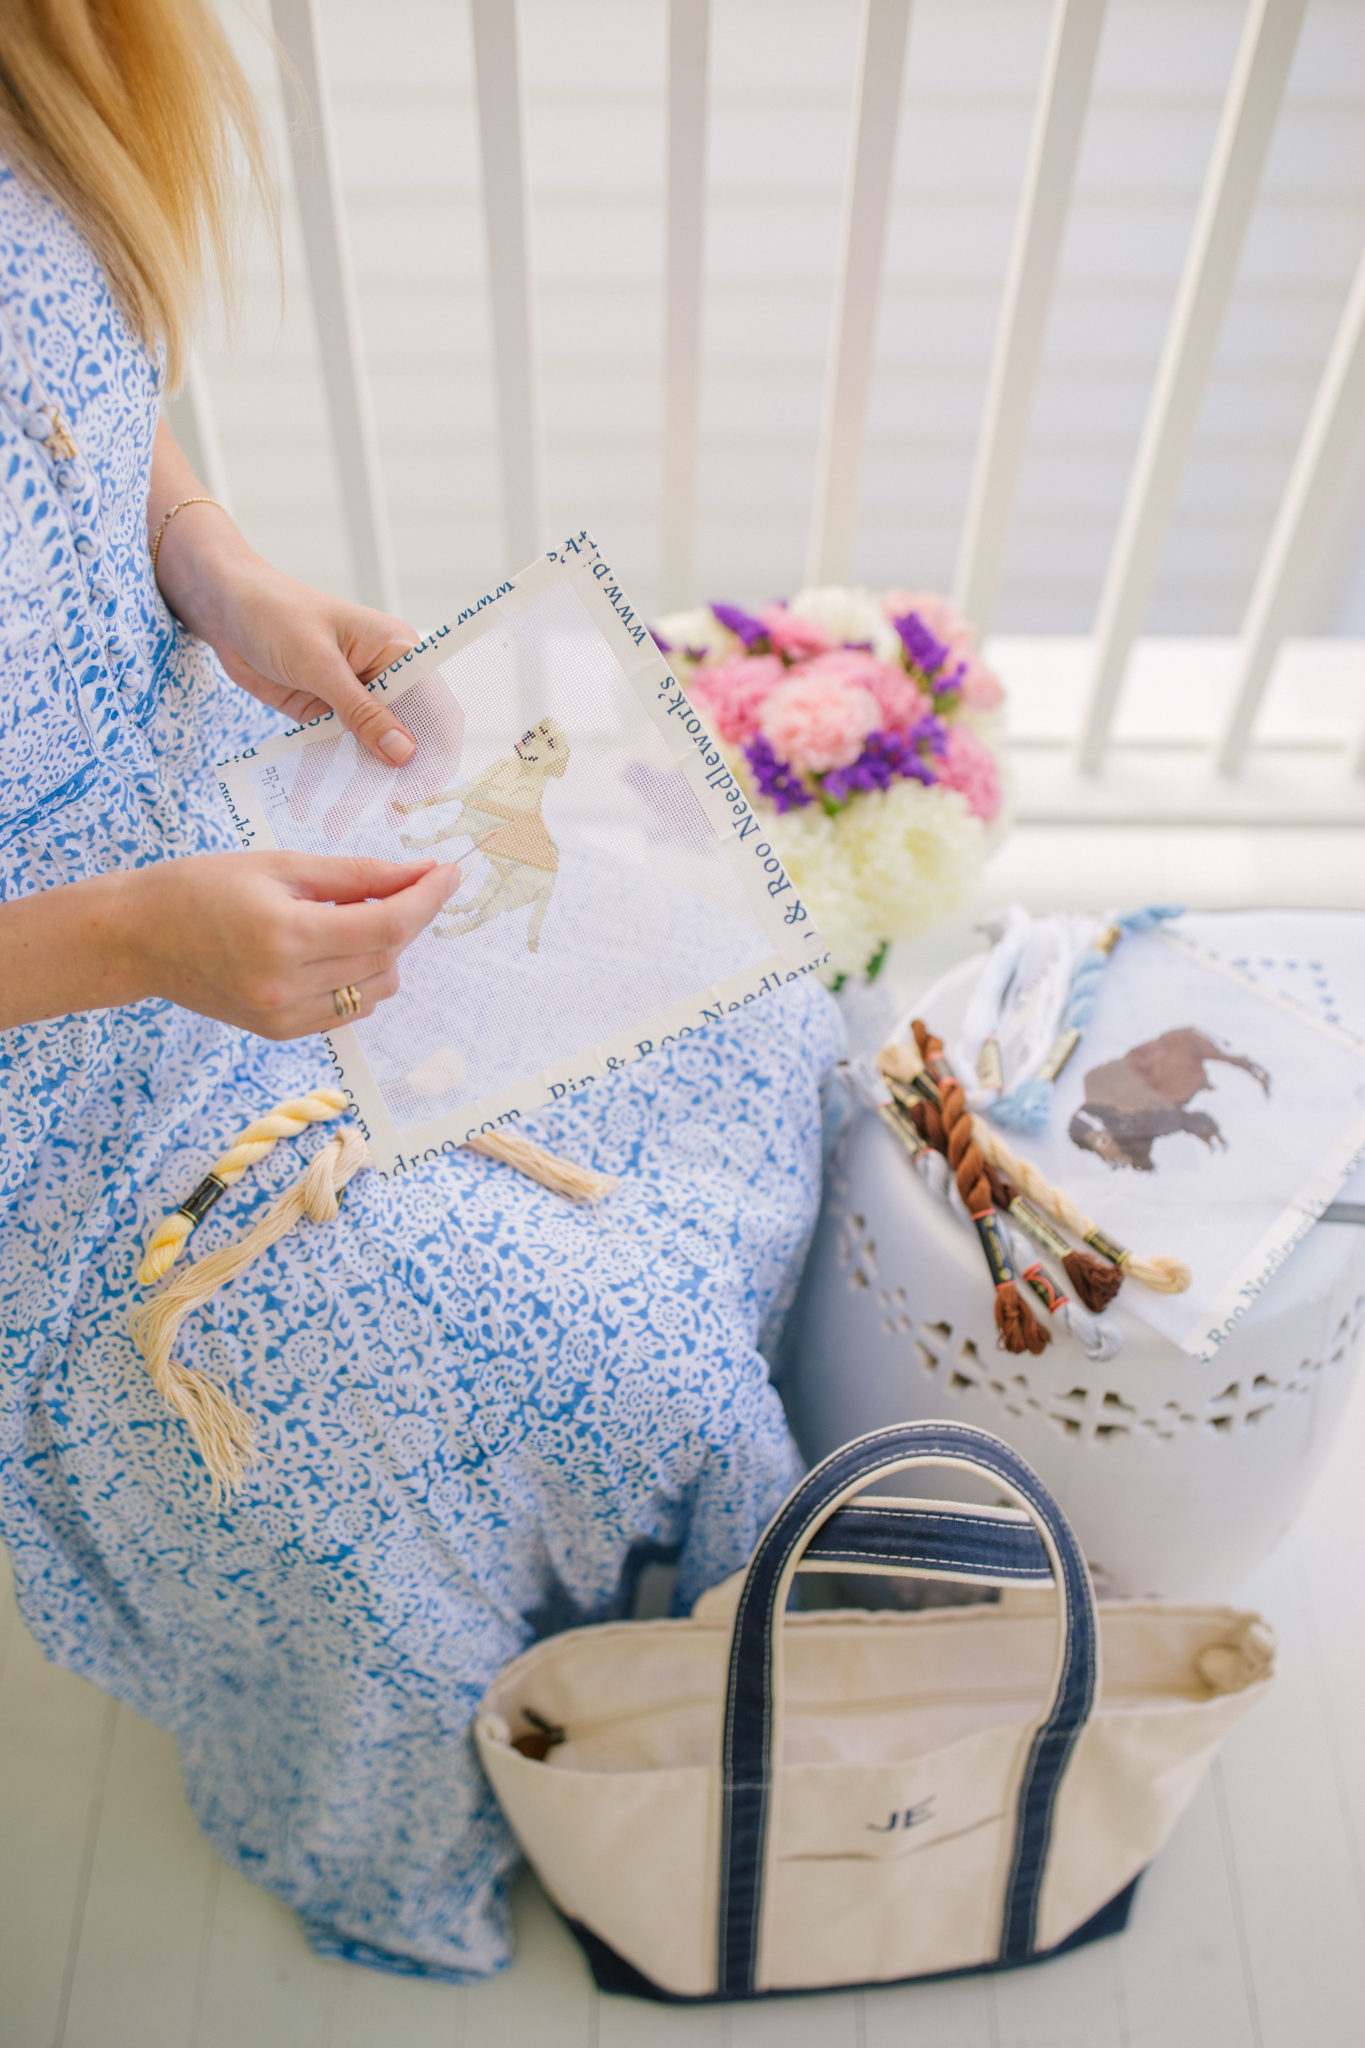 Crafts and Hobbies To Learn To Keep You Inspired | Rhyme & Reason